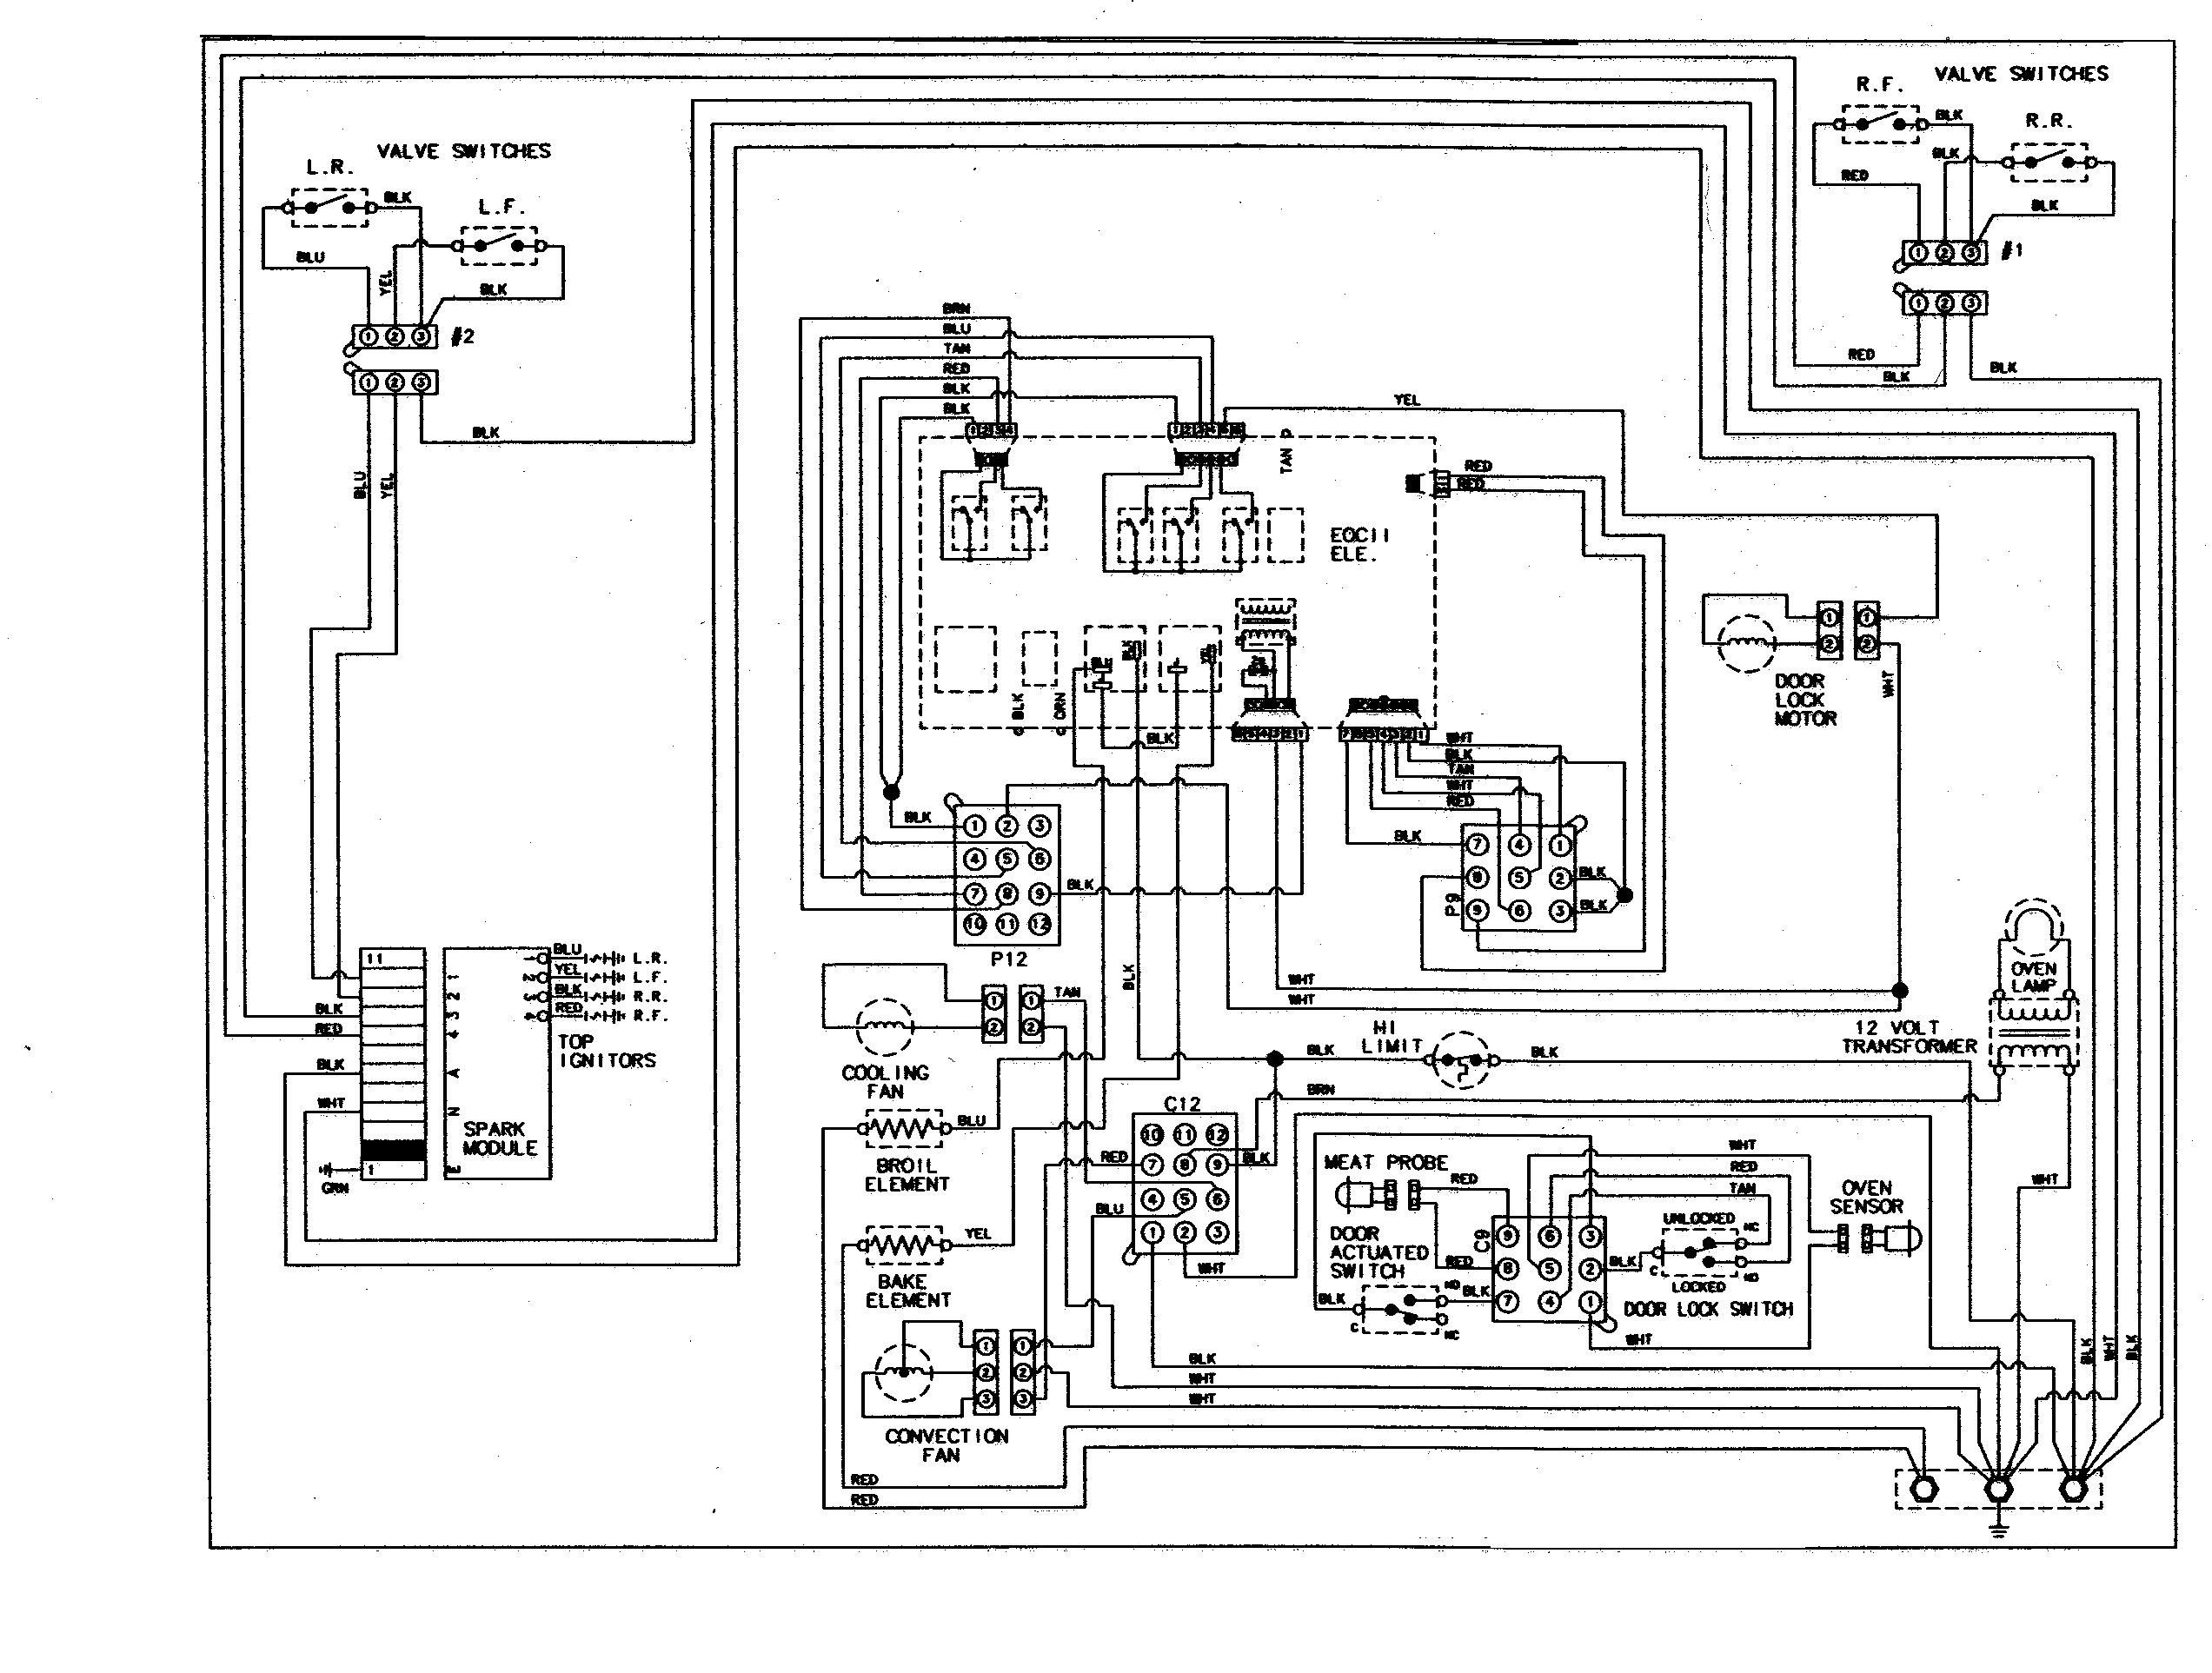 wiring information parts appliance wiring diagrams appliance wiring diagram bosch GE Range Hood Jvx3240 Wiring-Diagram at alyssarenee.co